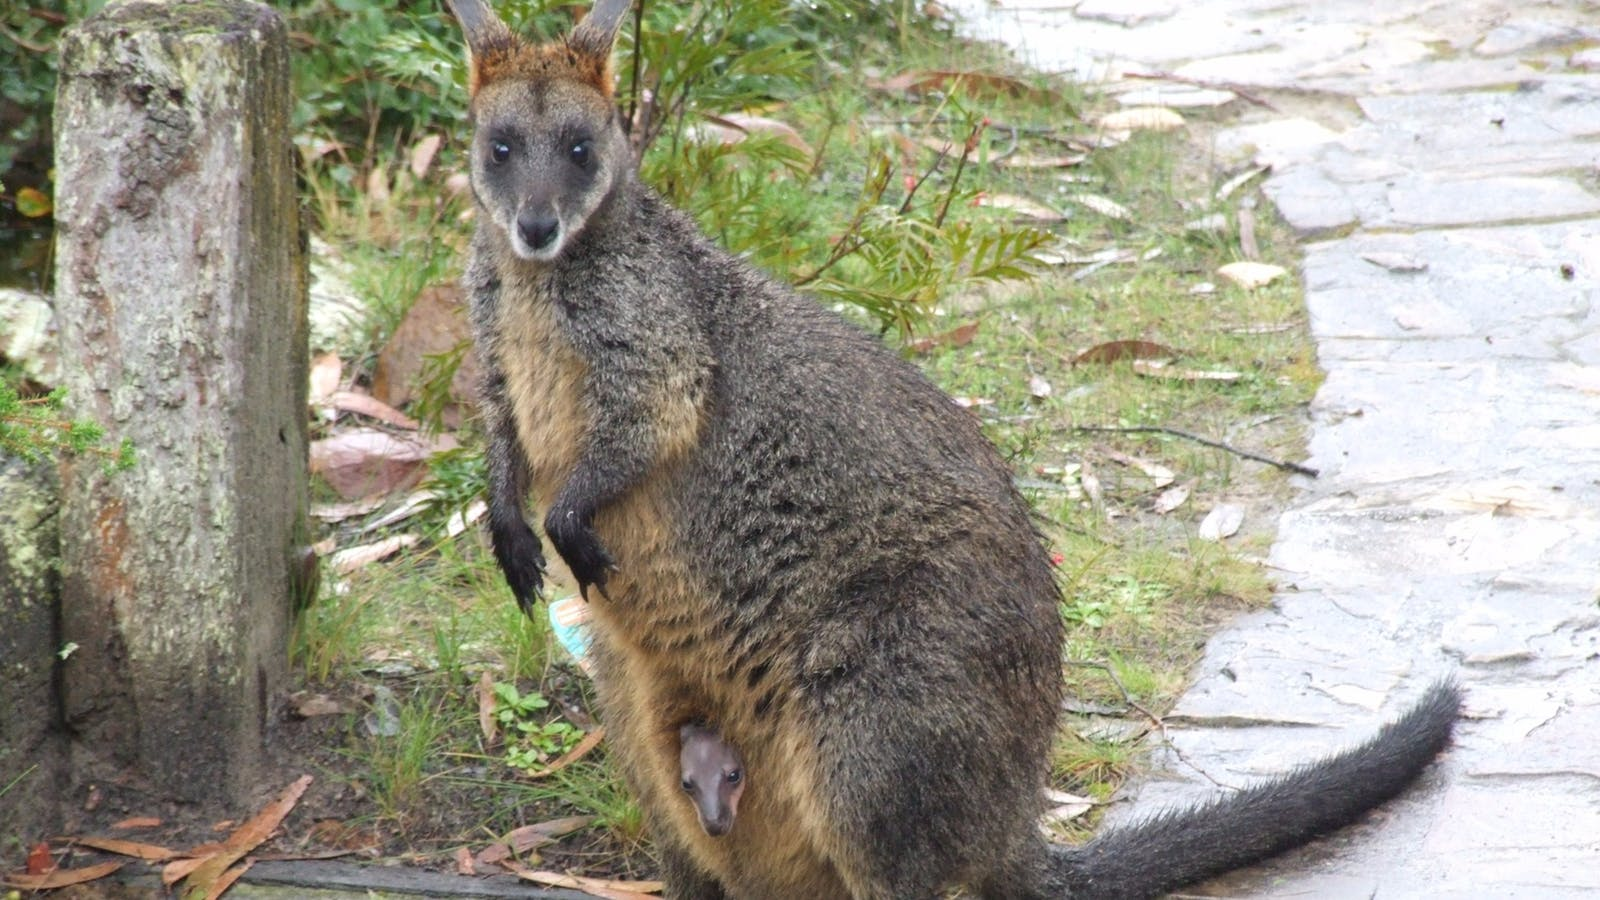 Swamp wallaby with a baby